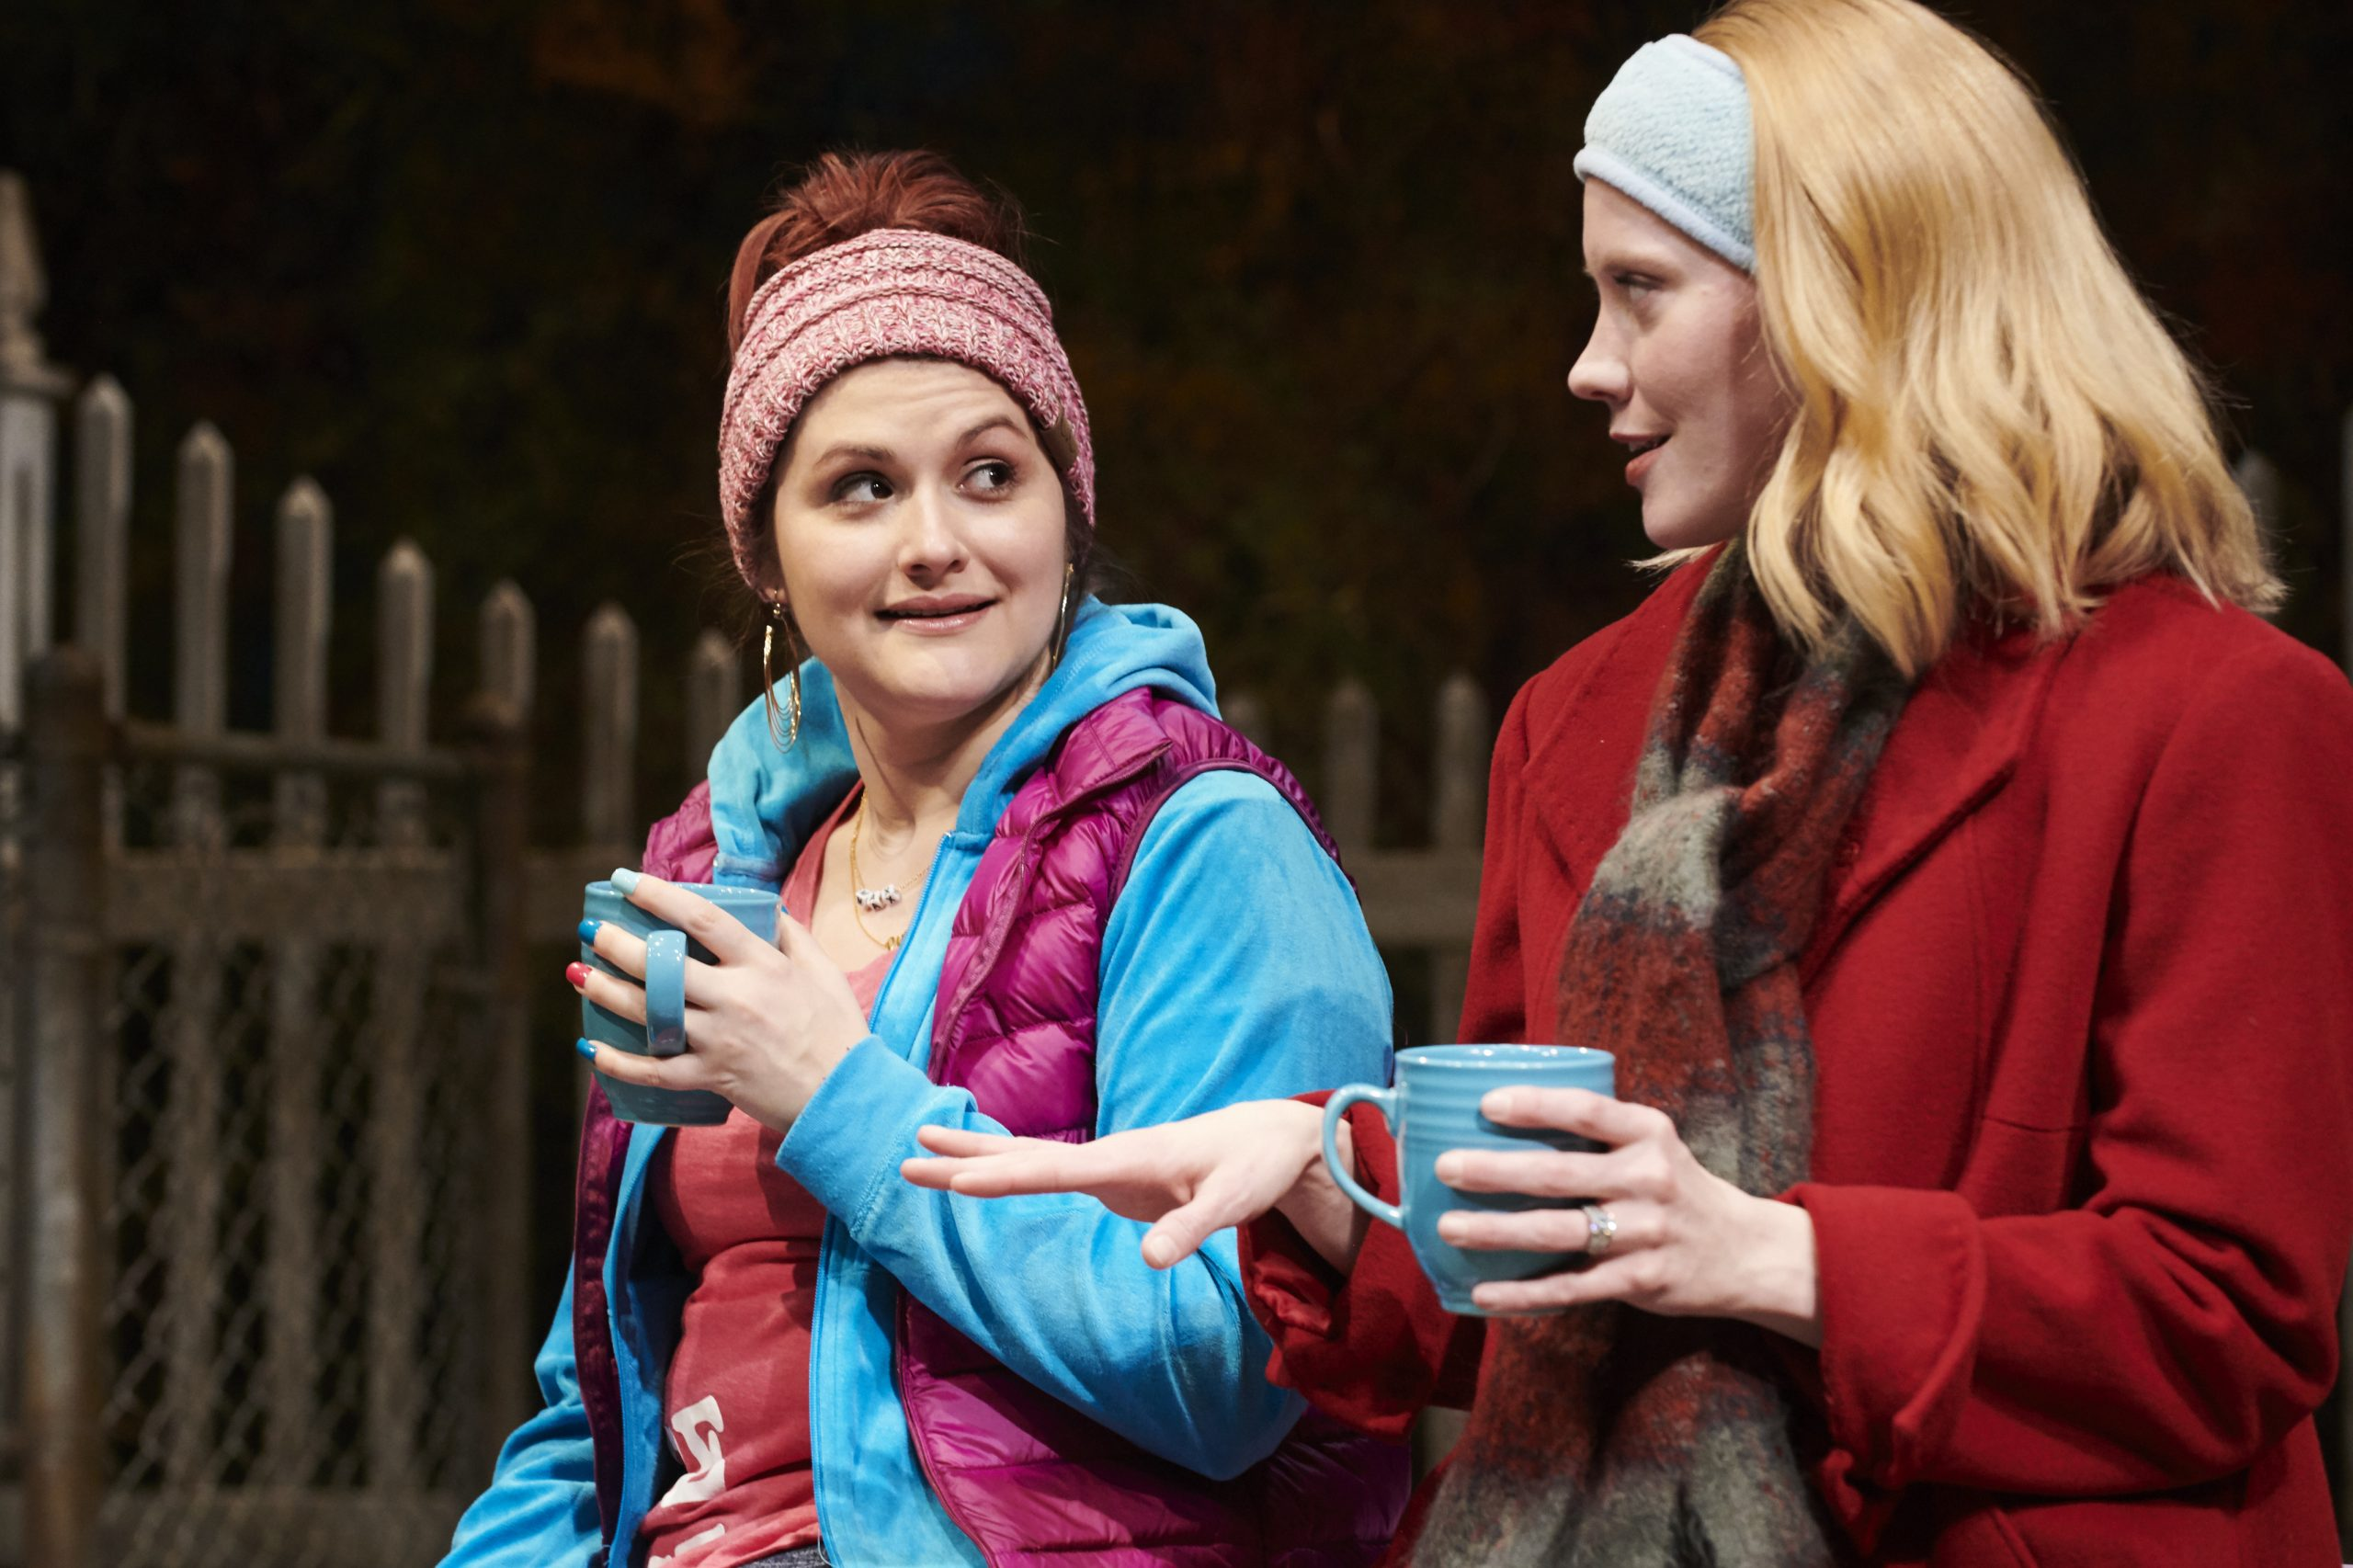 Julianne Avolio (L) and Sarah Goeke play women with new babies and new predicaments in 'Cry It Out' at City Theatre. (photo: Kristi Jan Hoover)